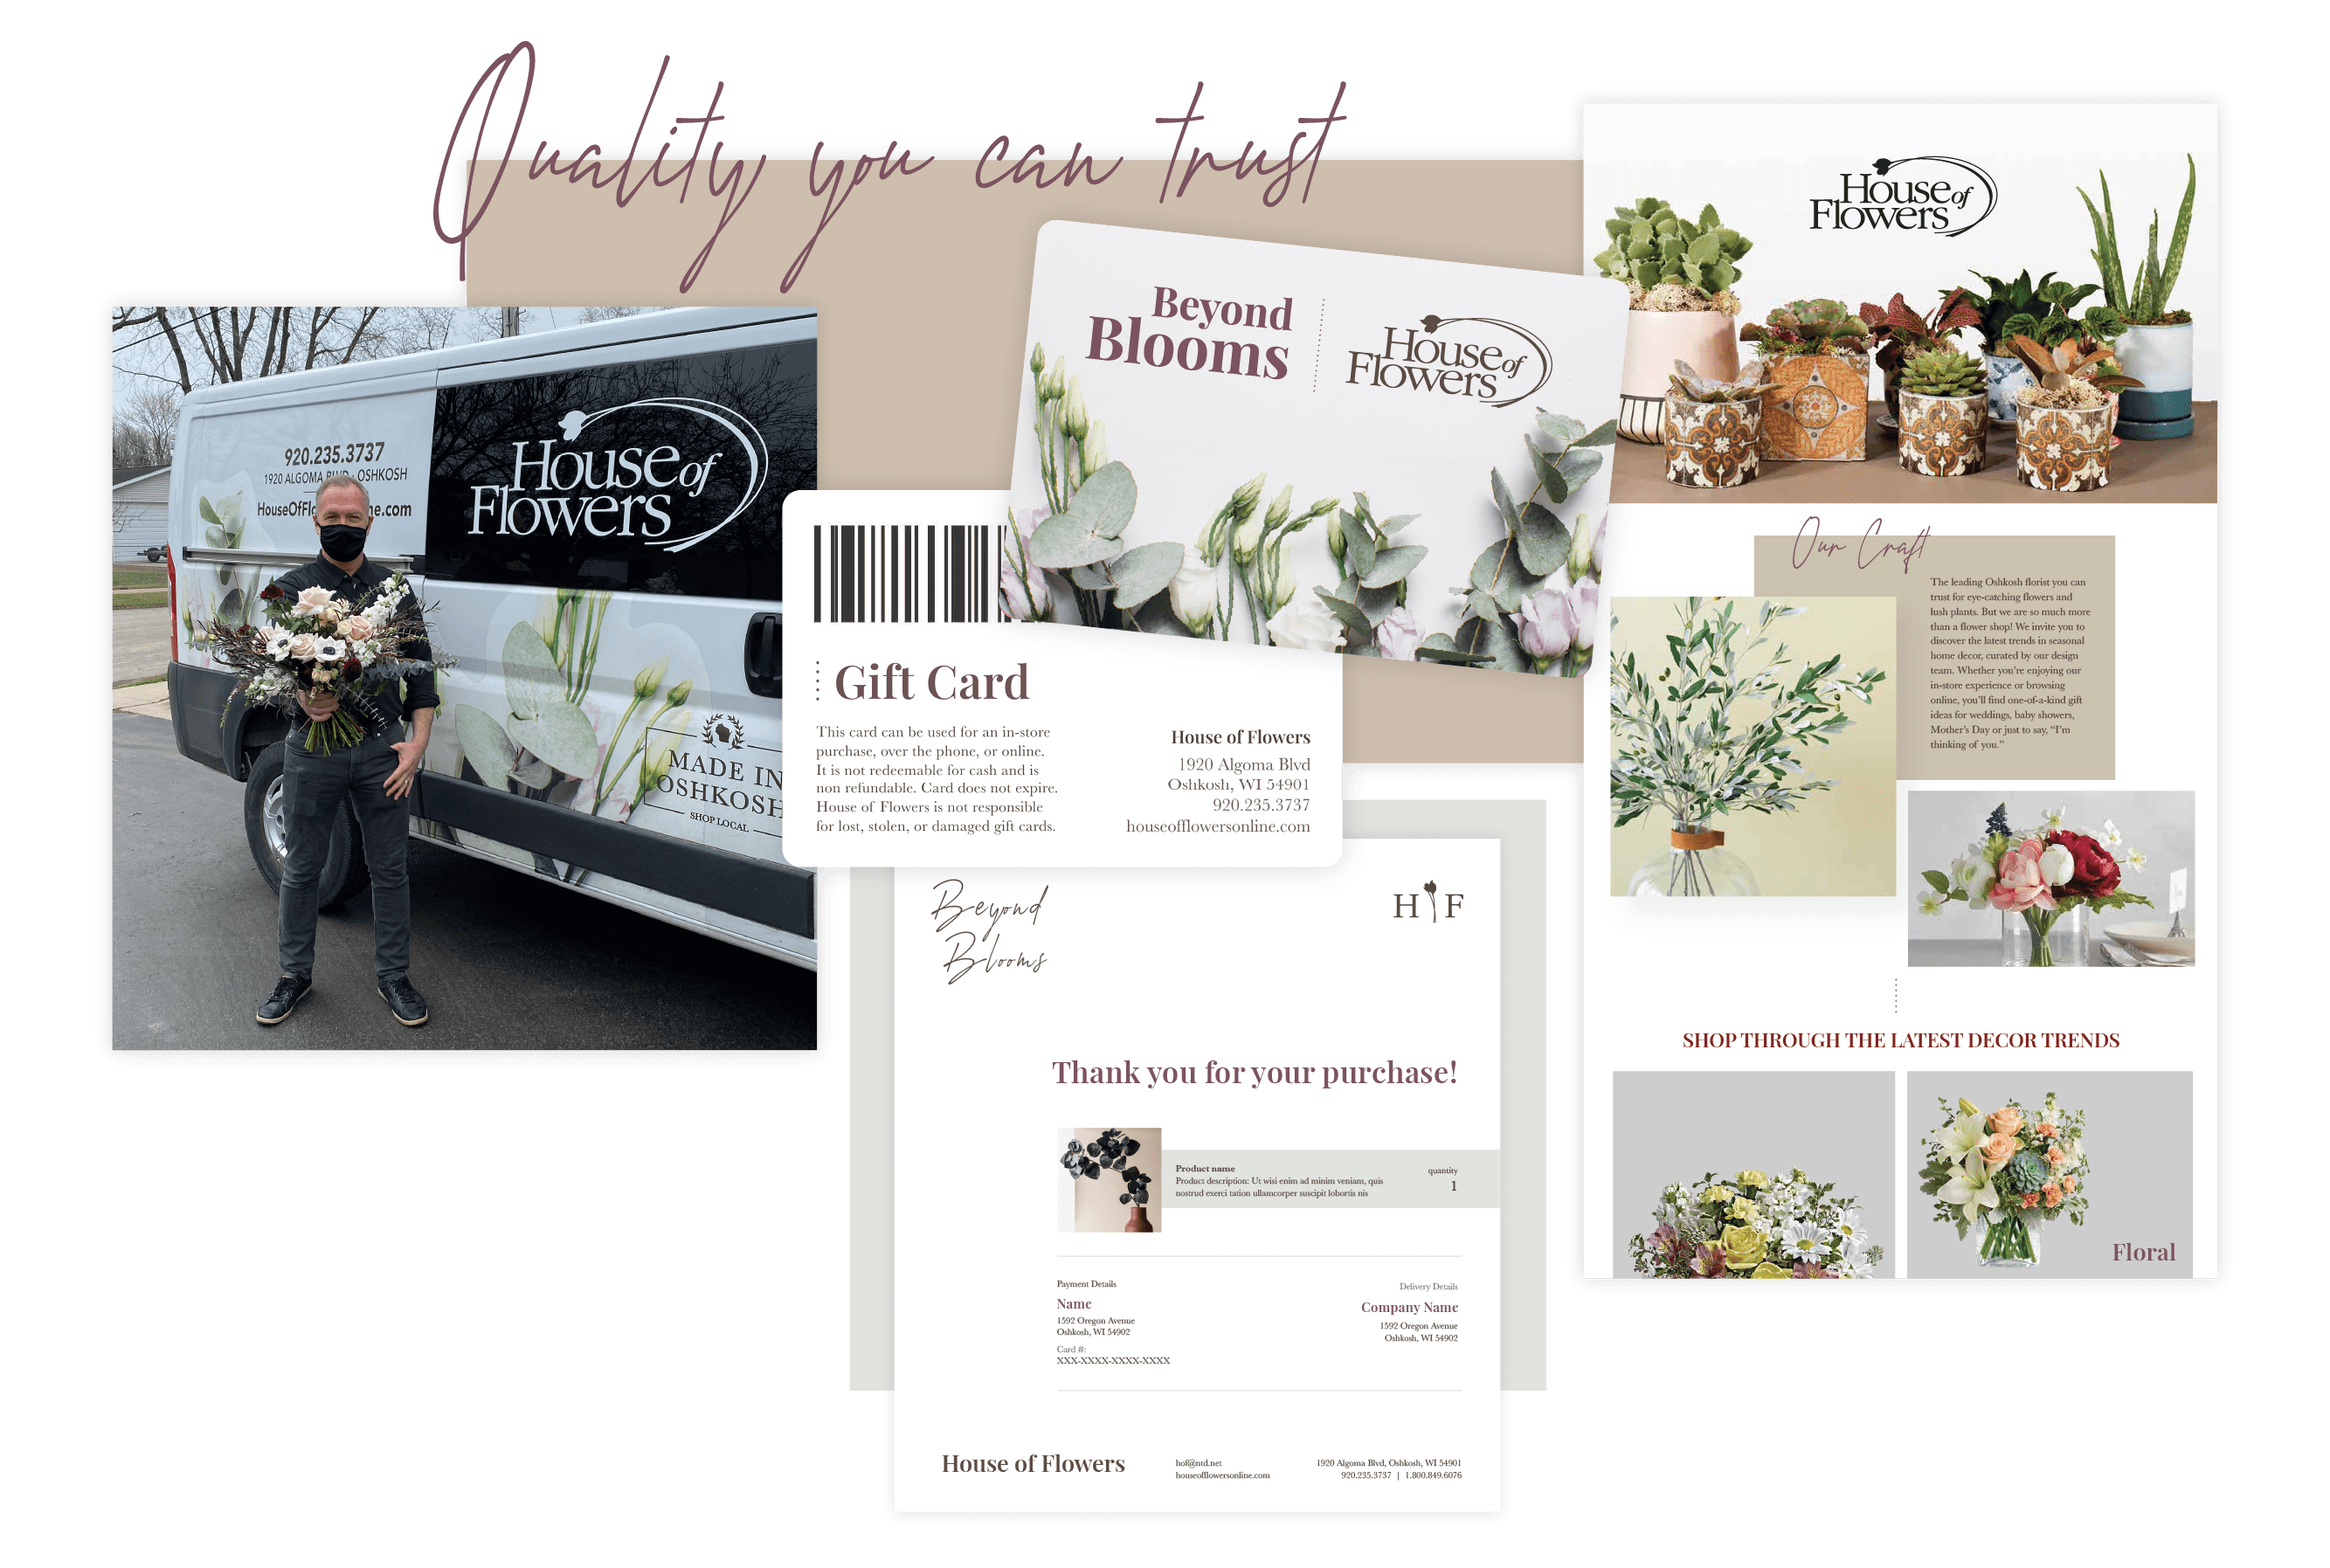 Collage of House of Flowers collateral: Delivery van, gift cards, email template.